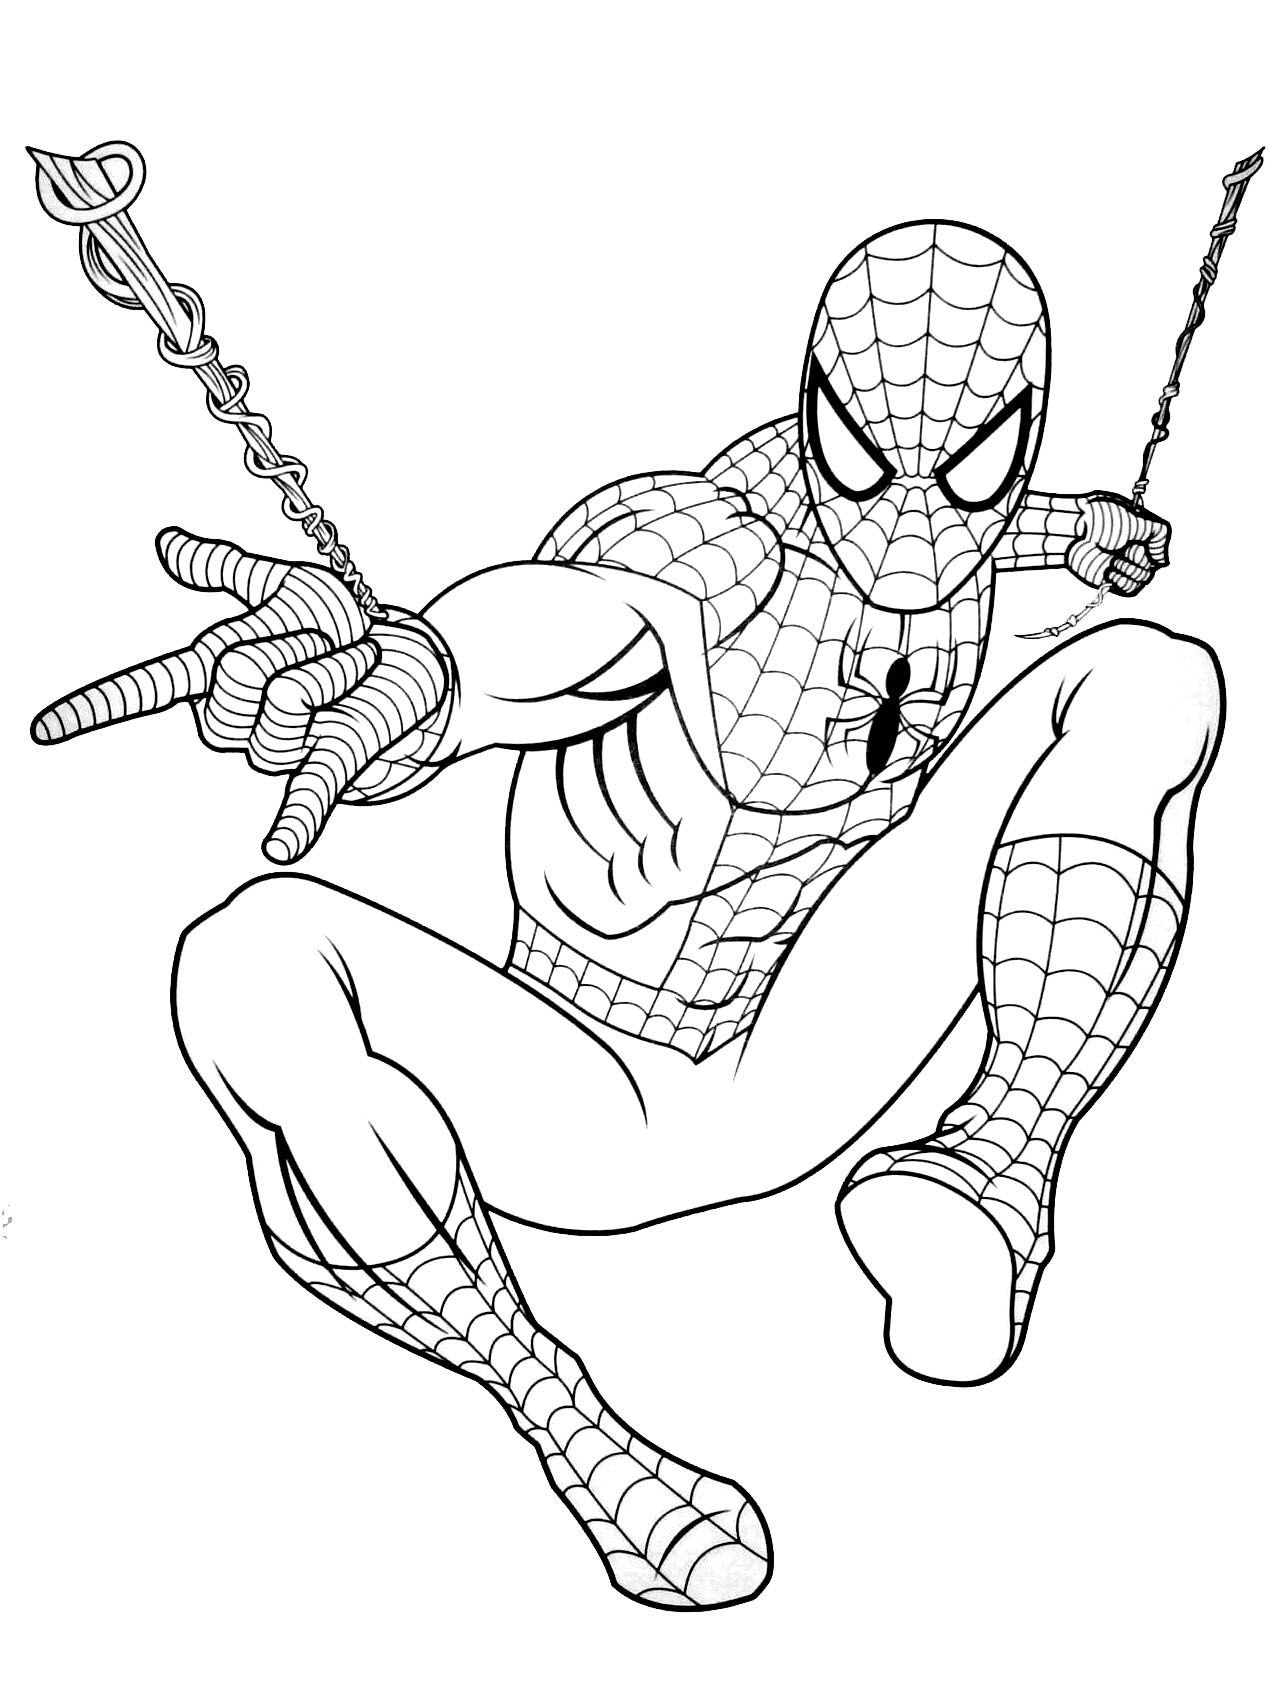 20 dessins de coloriage spiderman gratuit imprimer - Dessins a colorier gratuit ...